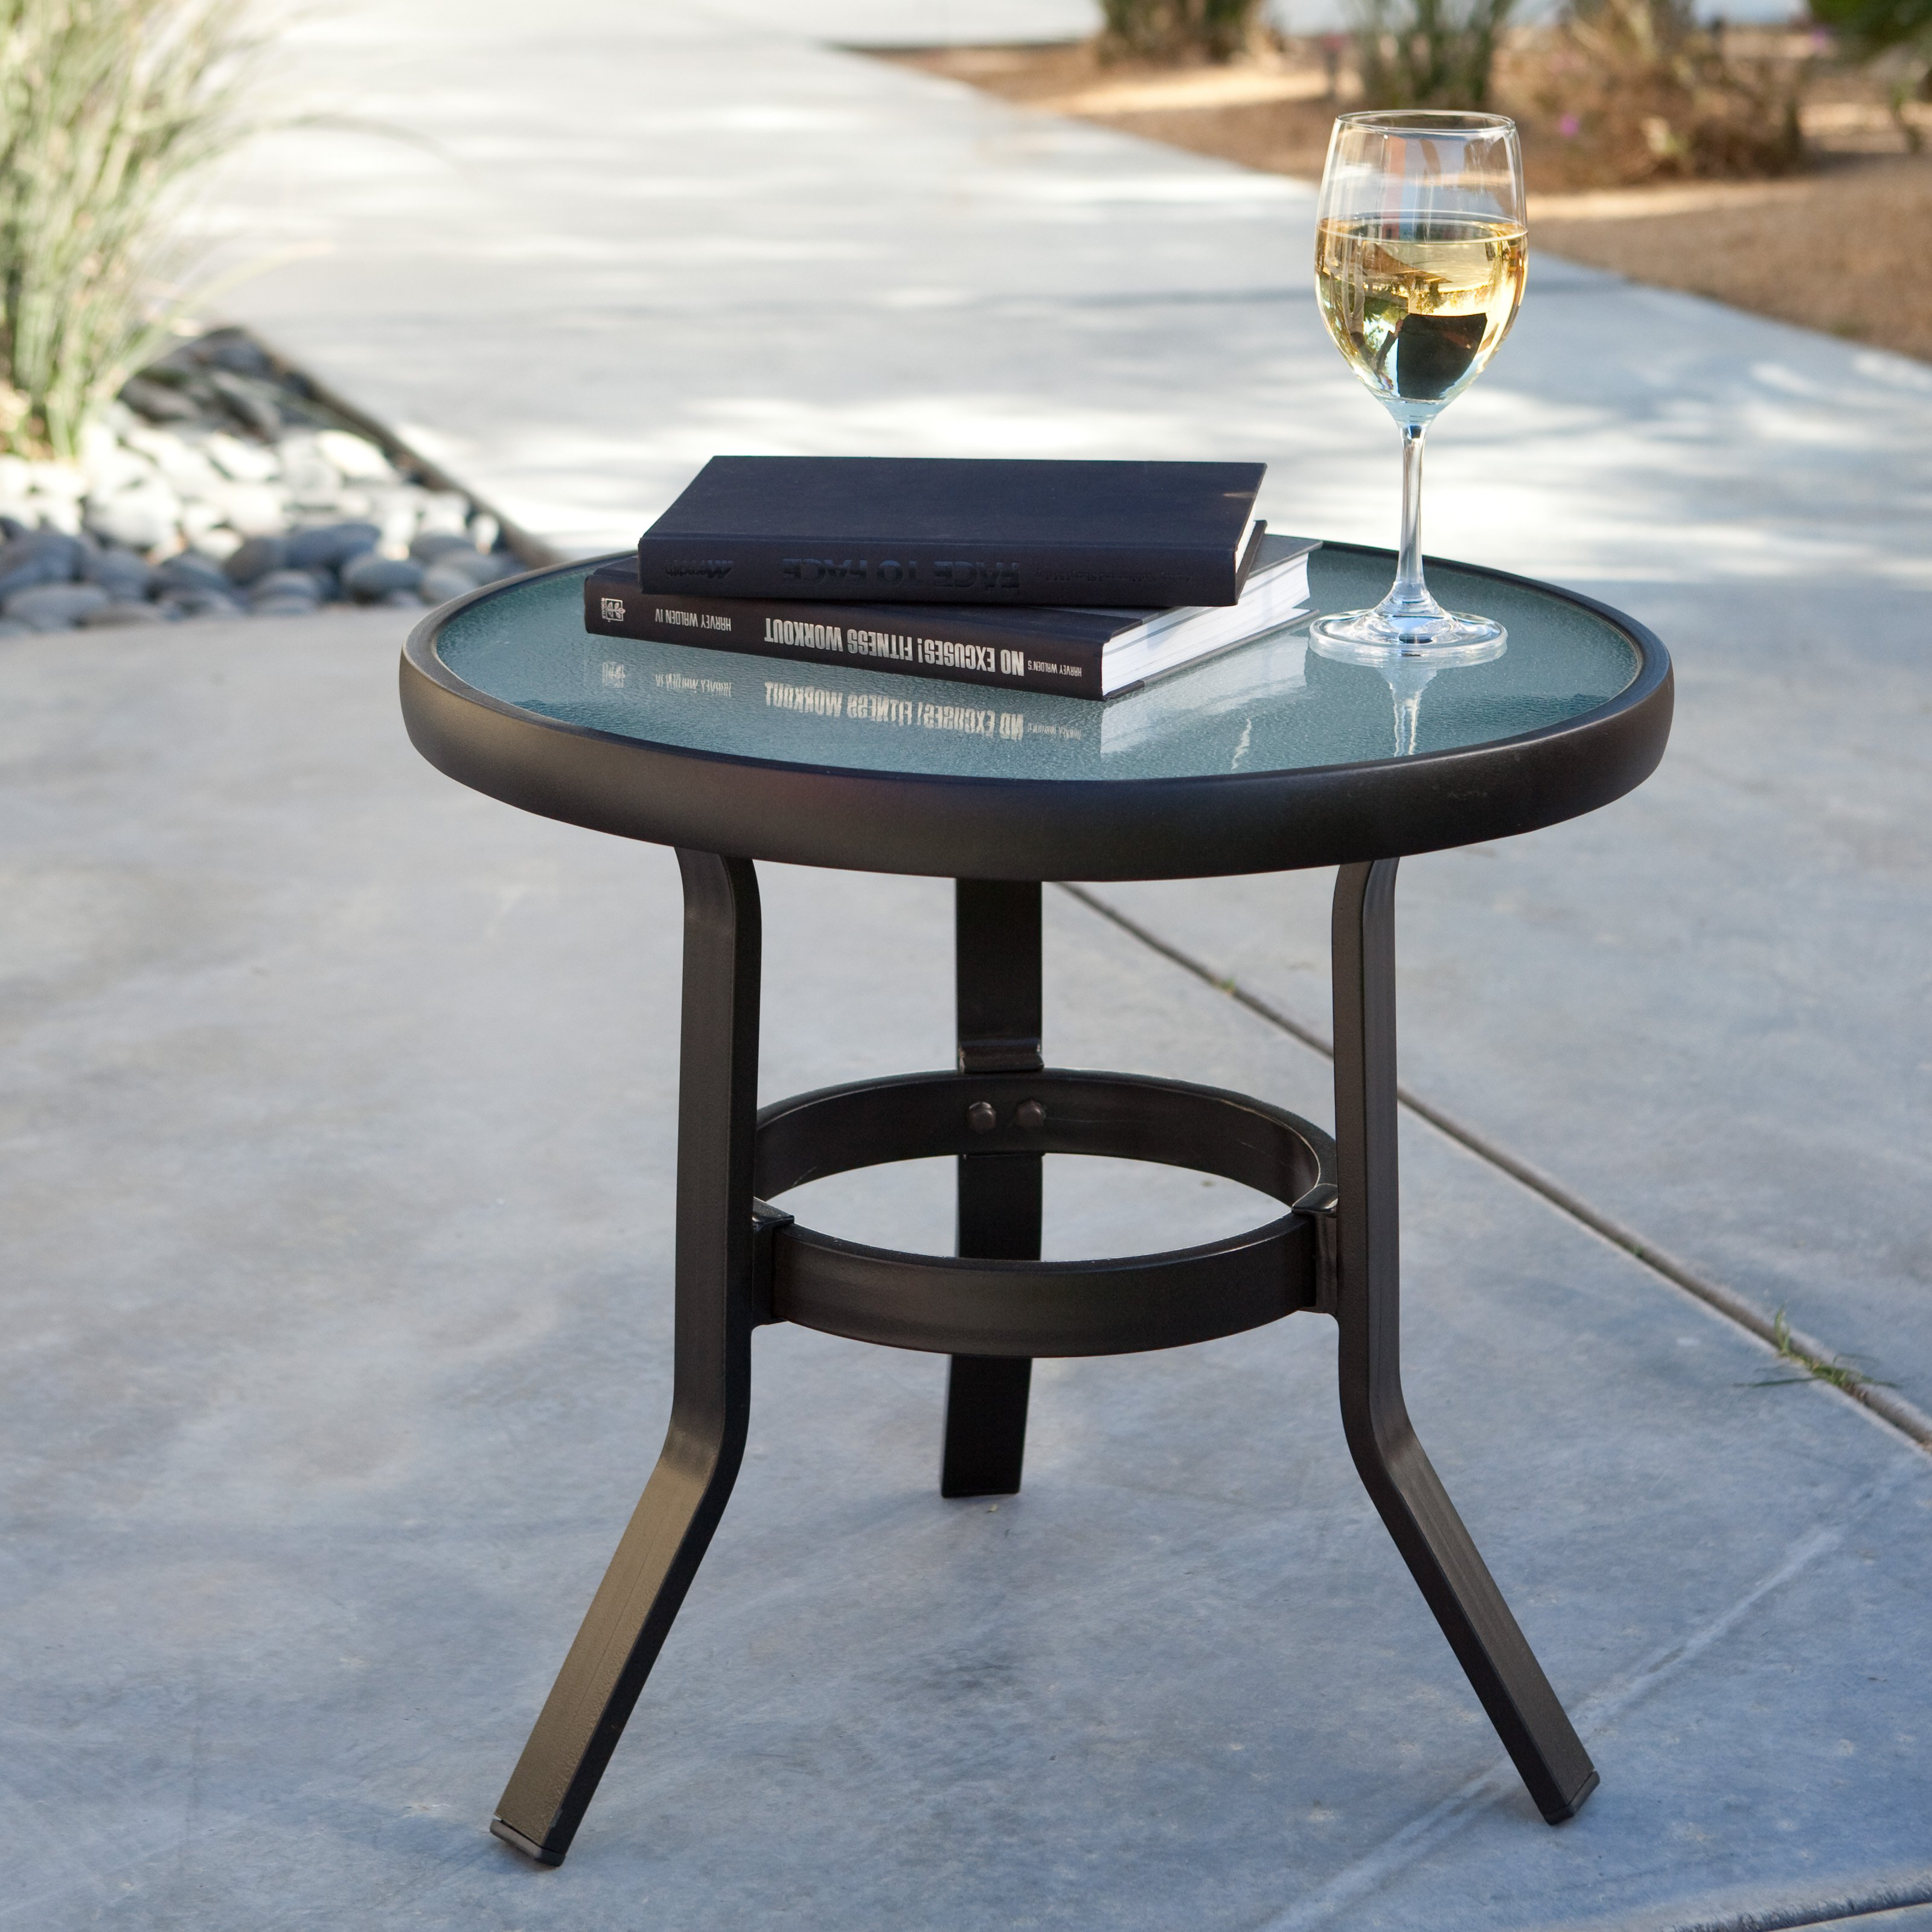 coral coast patio side table accent tables unfinished outdoor target occasional bedroom chairs inch wide console ethan allen san diego metal top canadian tire lawn wood cabinet